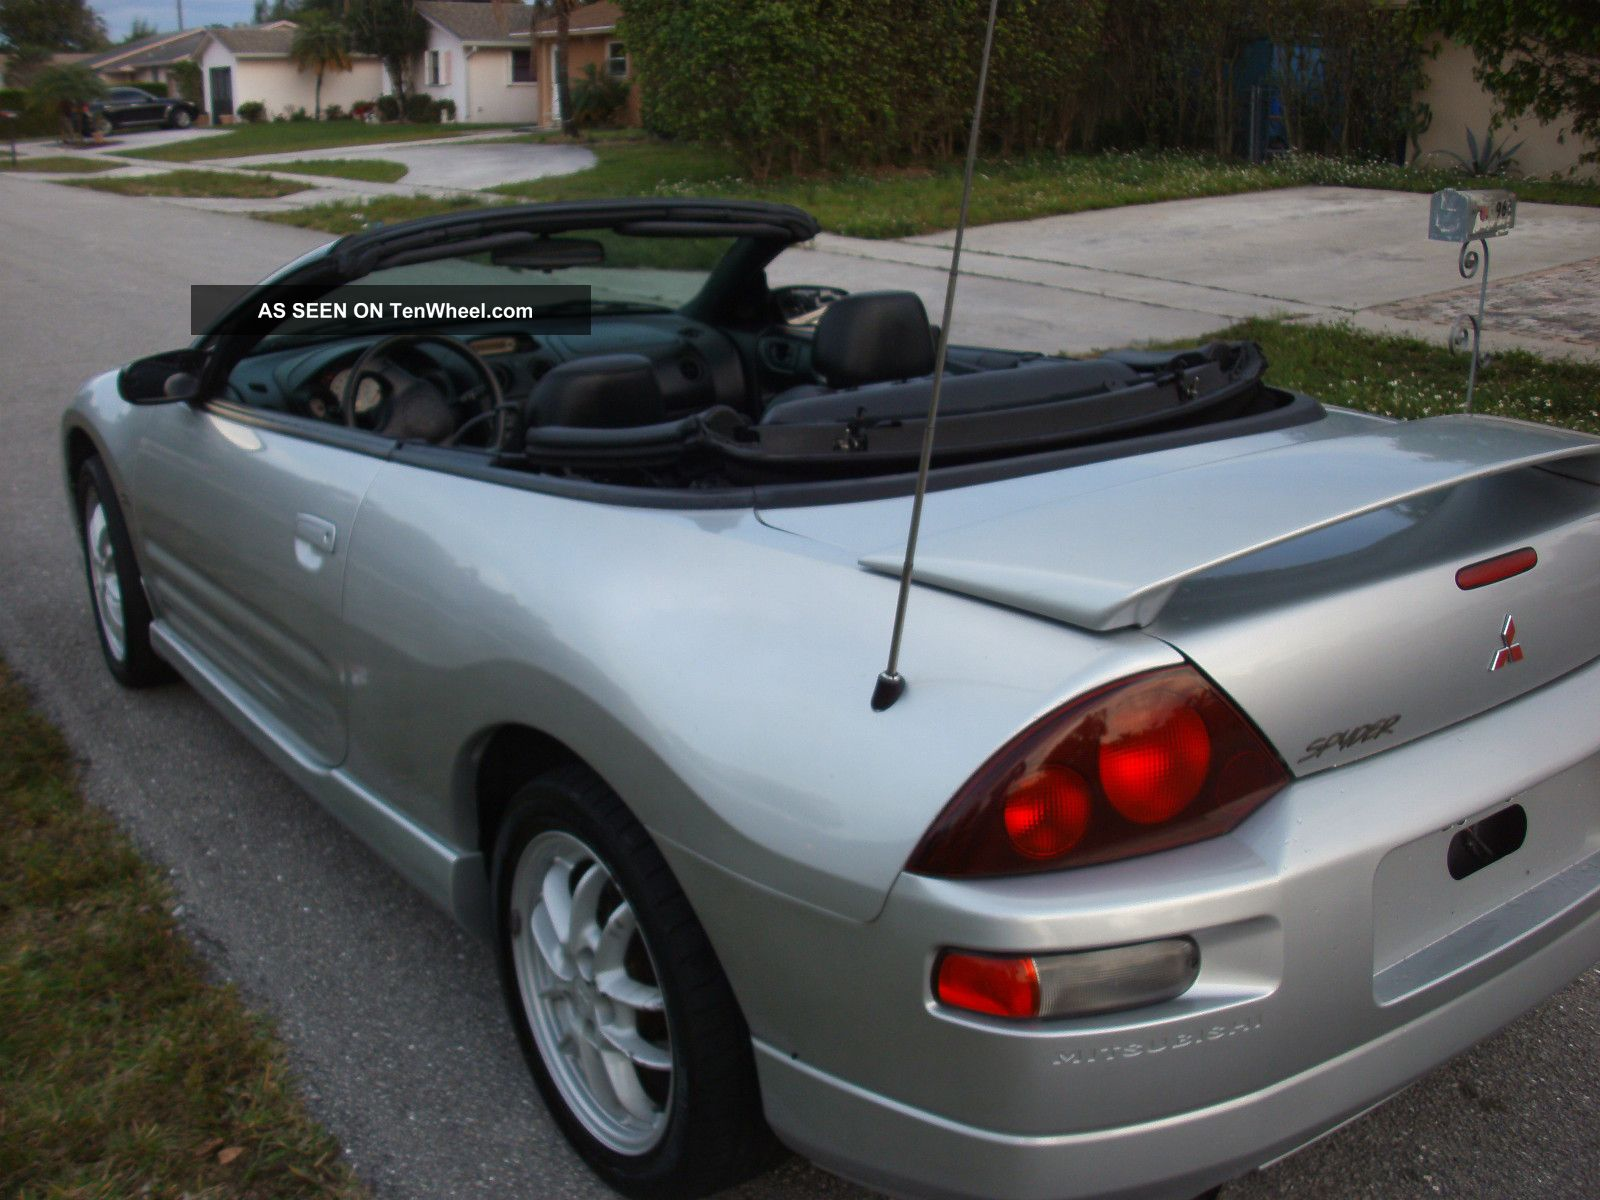 latest gts view mitsubishi file wiki image eclipse the side gt spyder cb